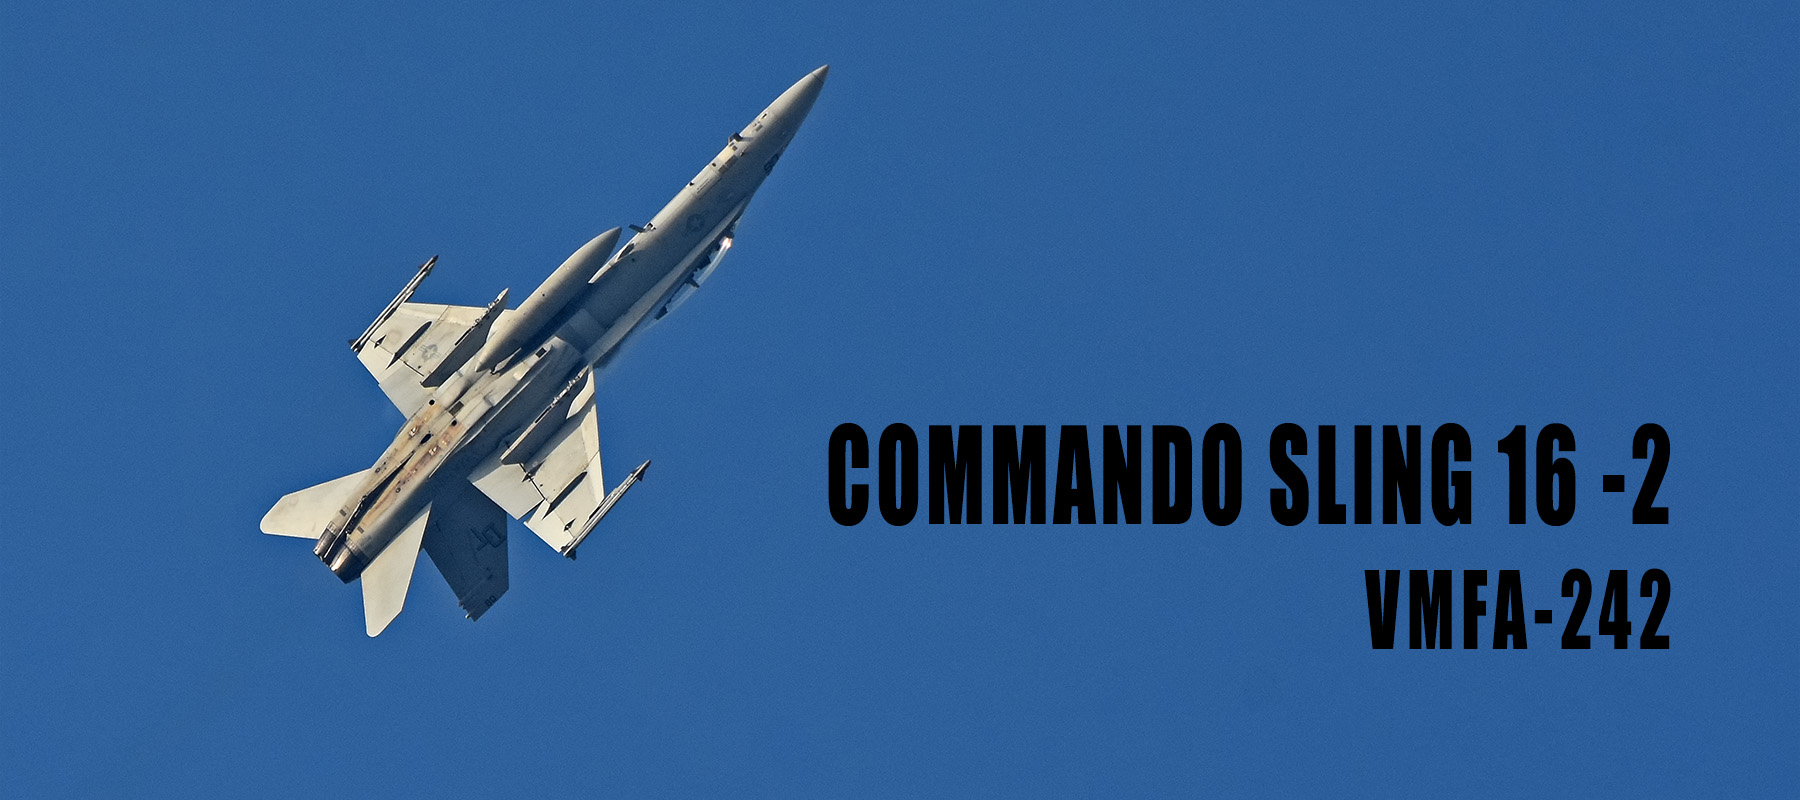 FA-18D particpating in Commando Sling 16-2